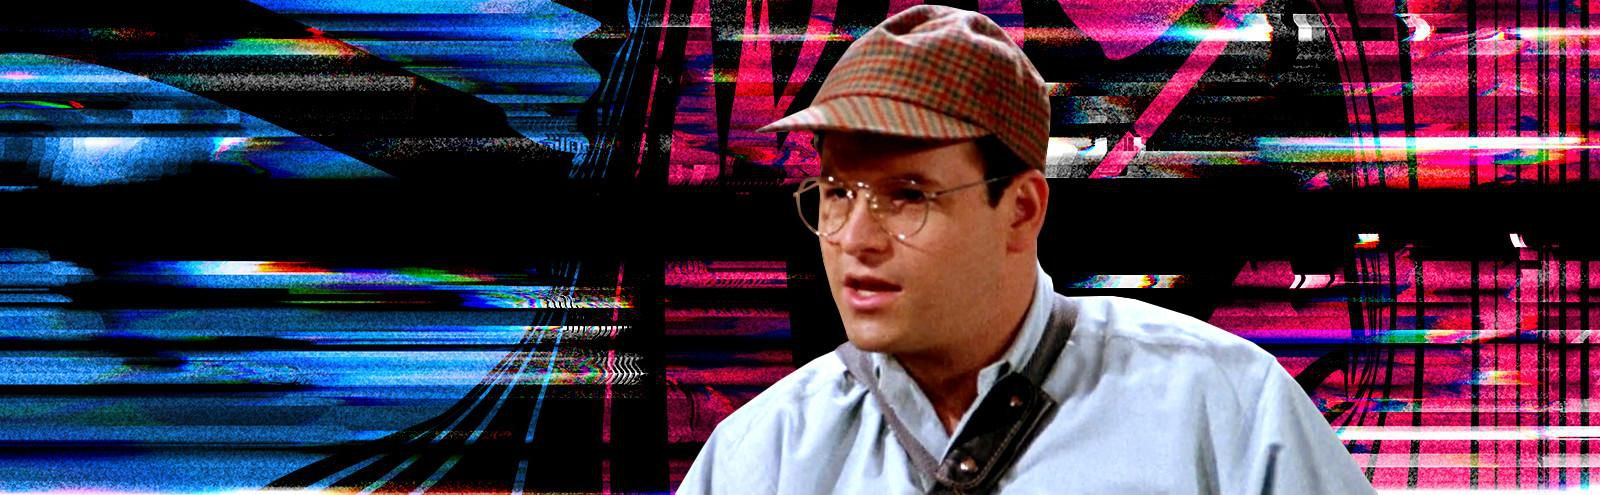 A Fond Goodbye To George Costanza, The Hip-Hop Style Influencer Of The 2010s